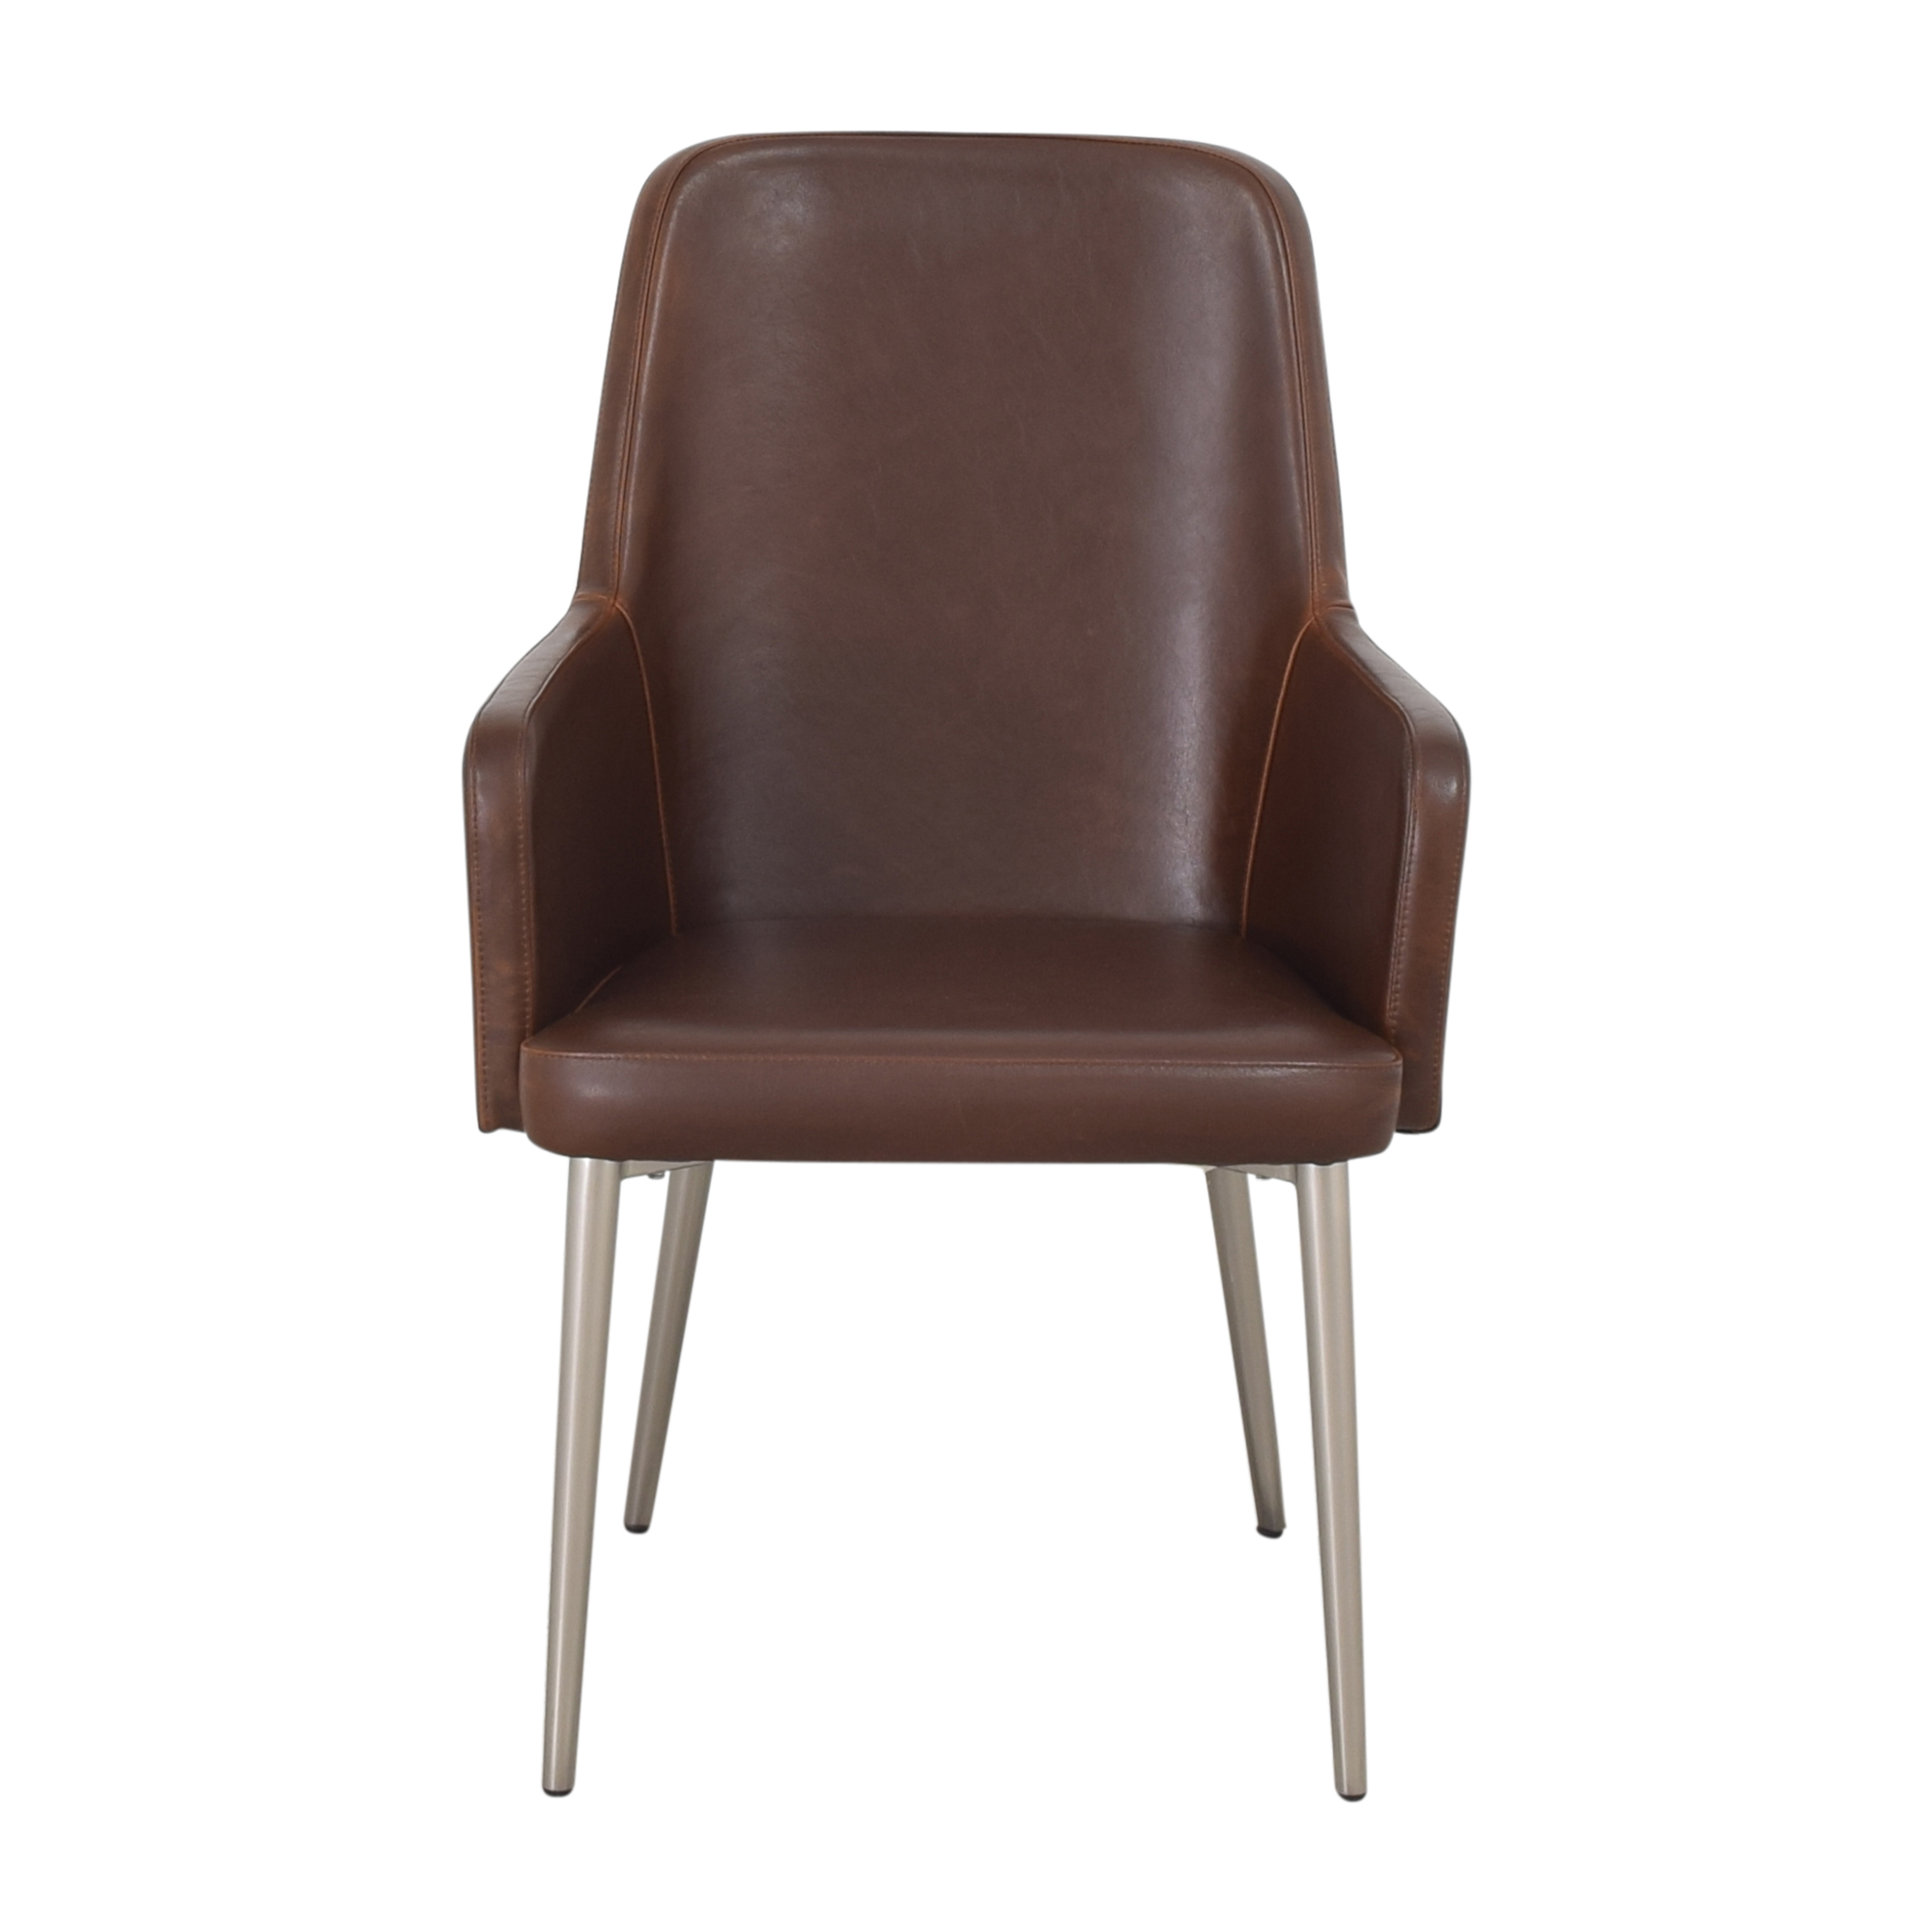 shop CB2 Aragon Chair CB2 Chairs